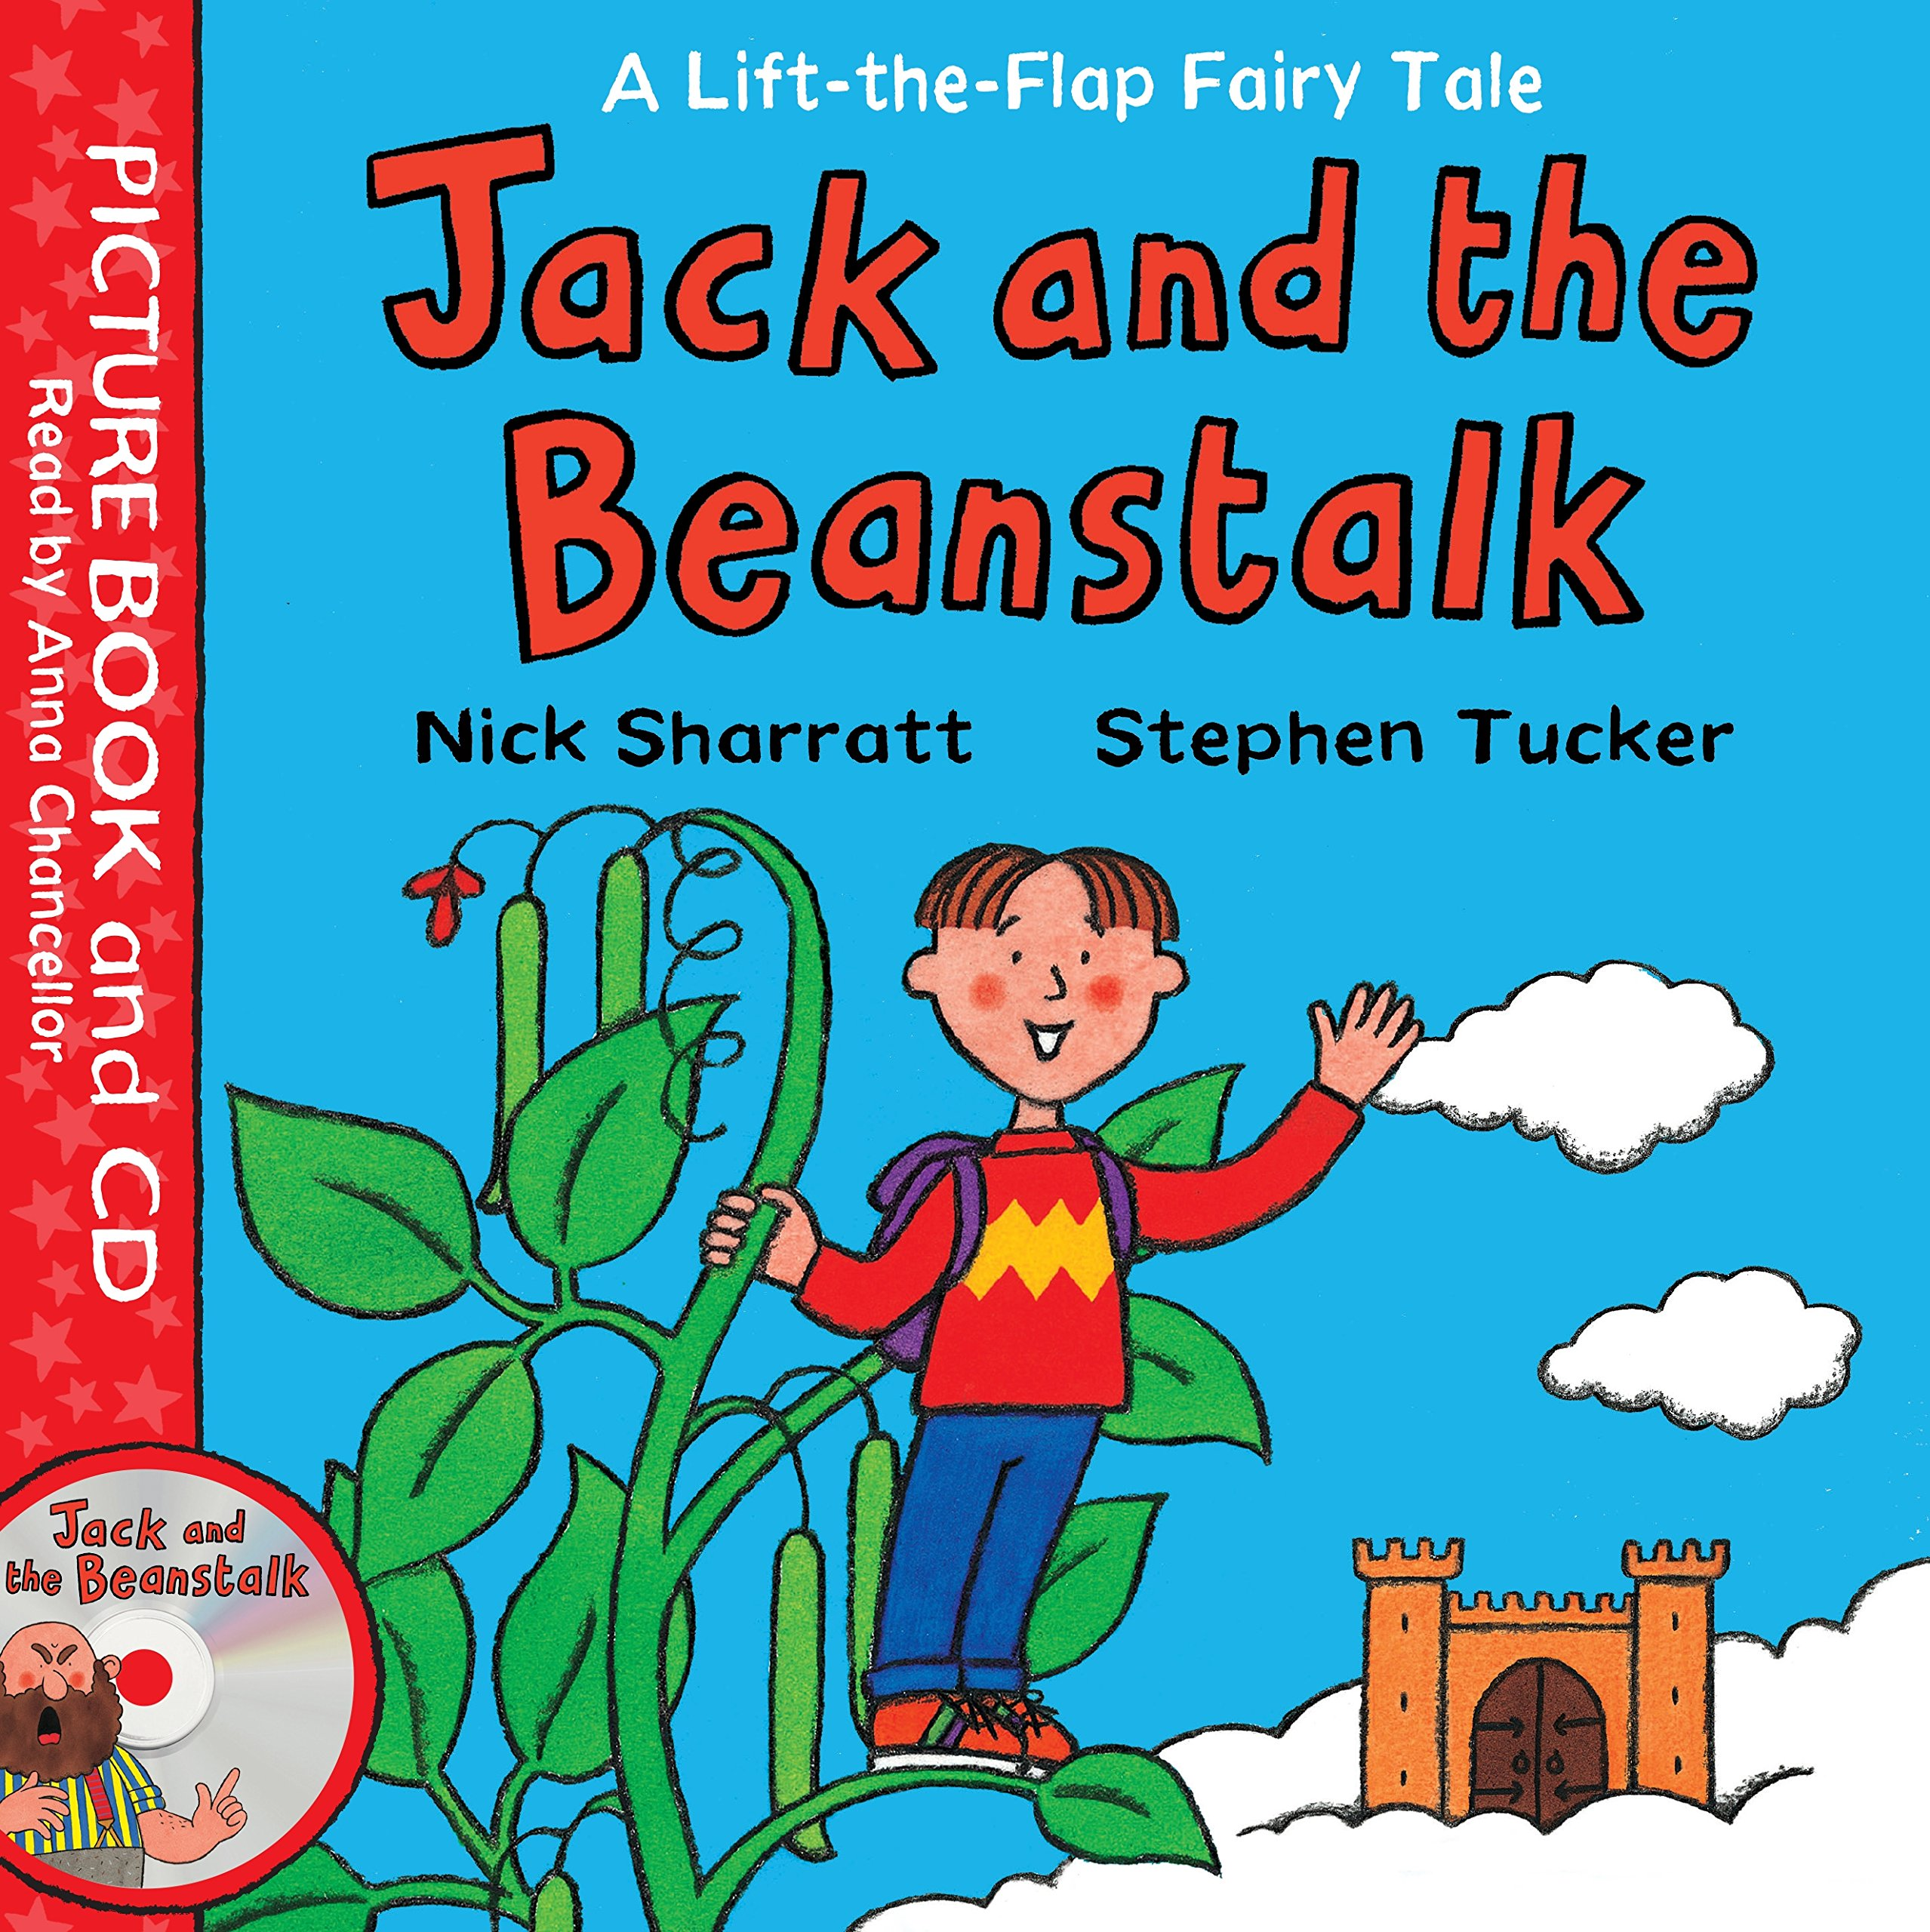 Lift-the-Flap Fairy Tales: Jack and the Beanstalk Book and CD Pack cd диск the doors when you re strange a film about the doors songs from the motion picture 1 cd